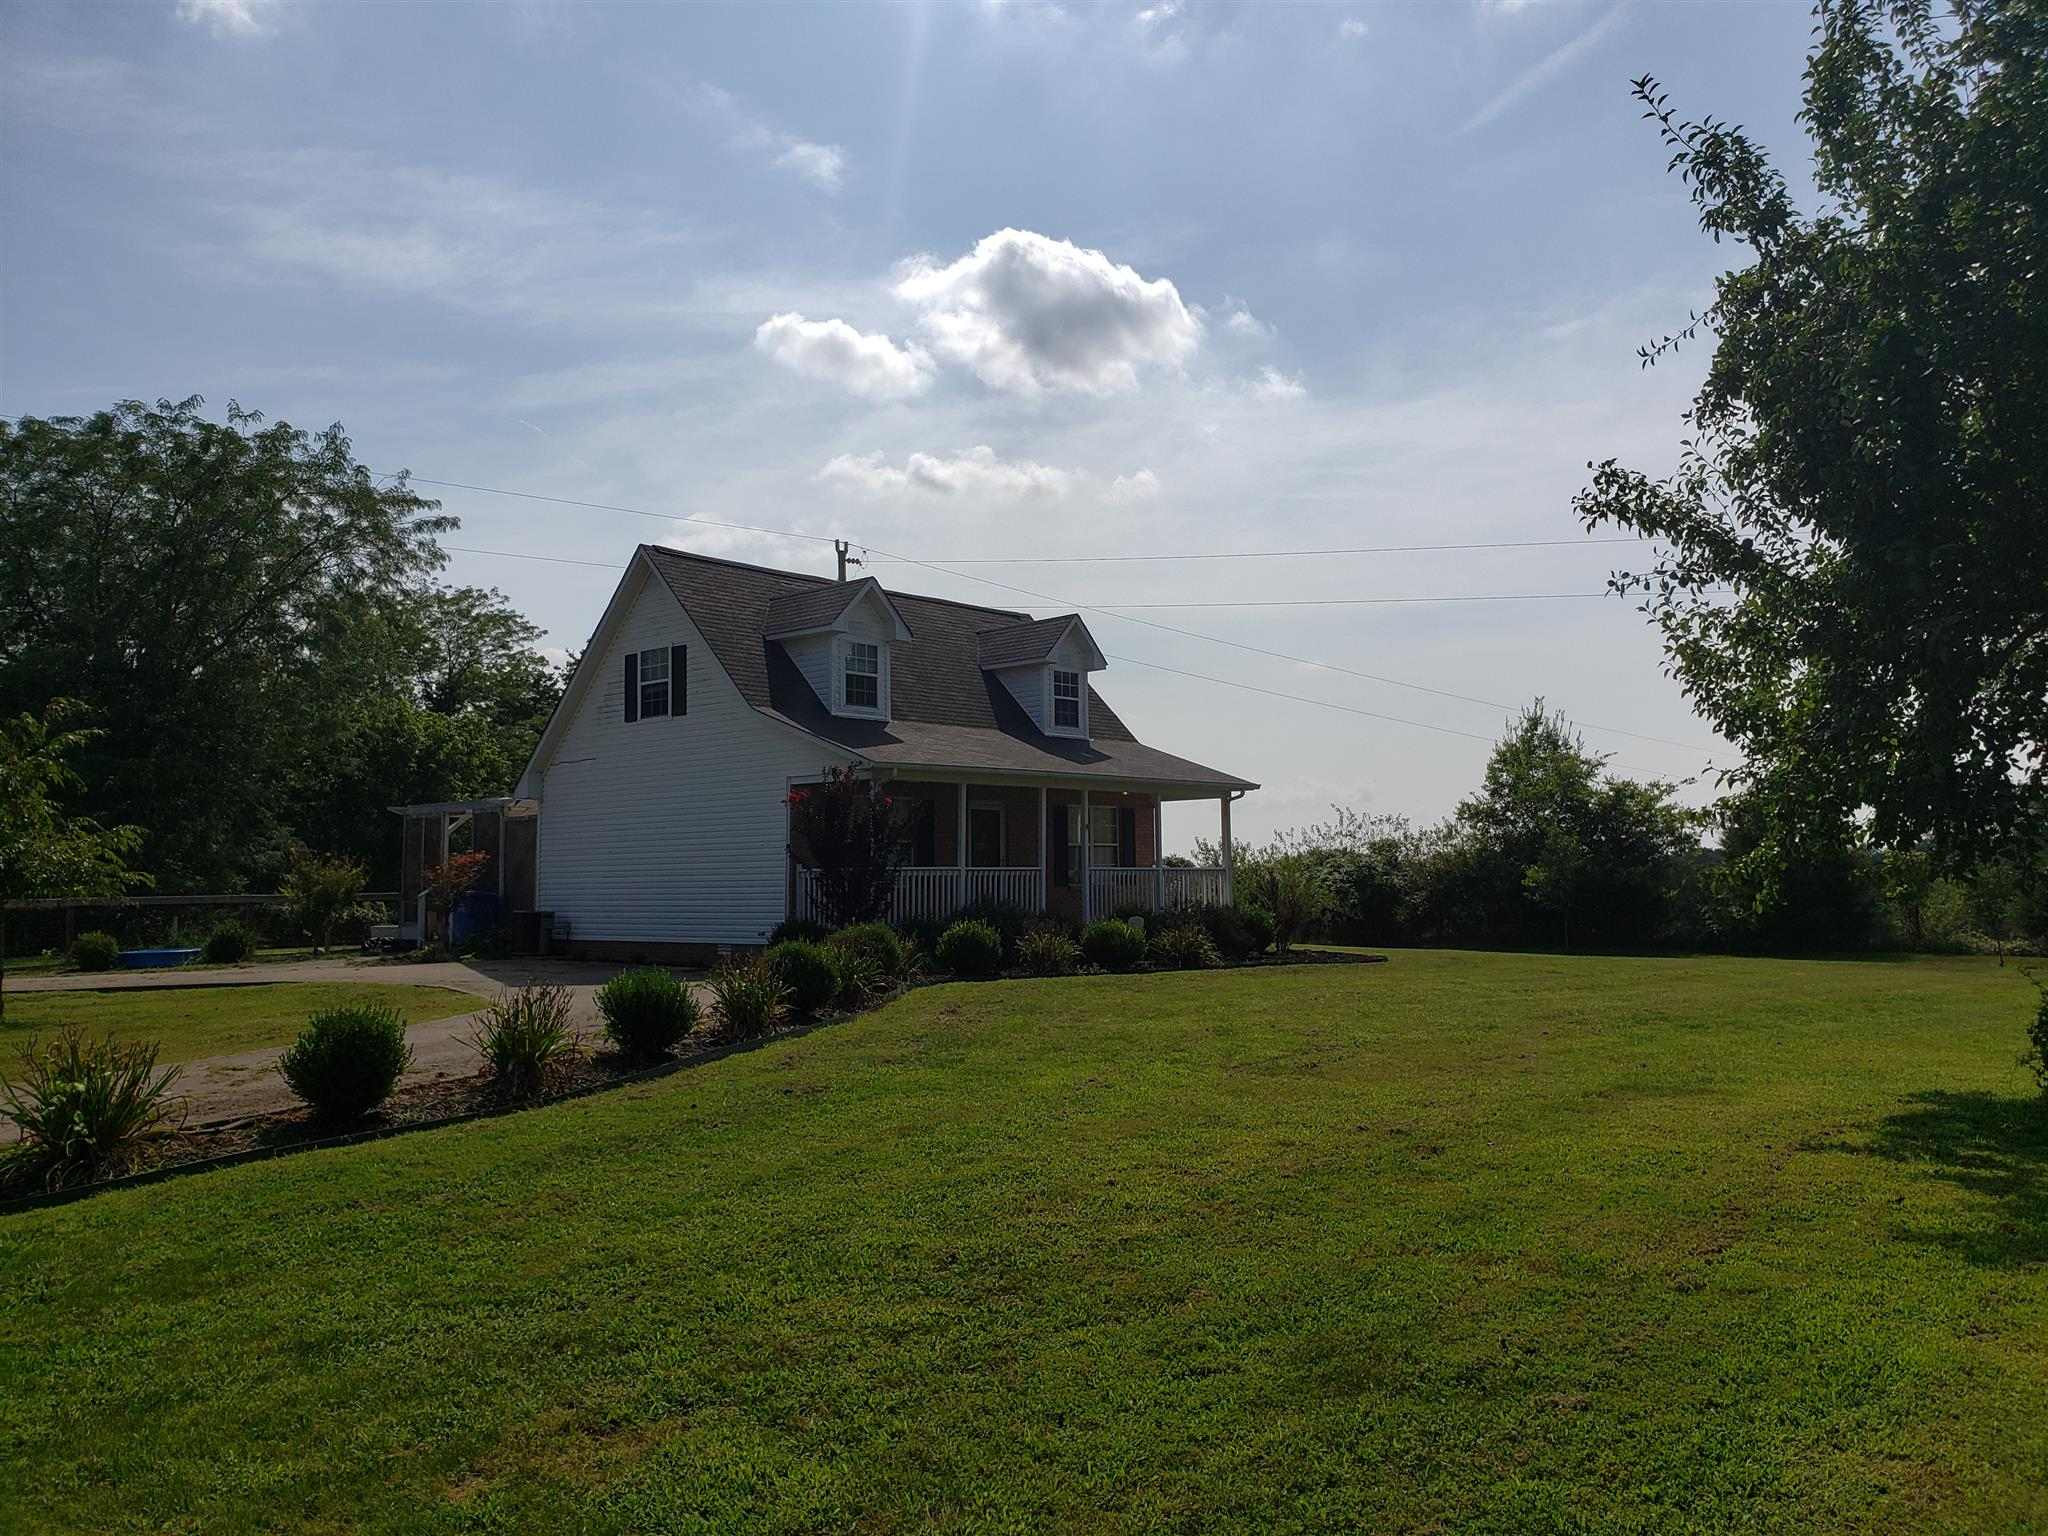 2449 E Adams Mill Rd, Cadiz, KY 42211 - Cadiz, KY real estate listing